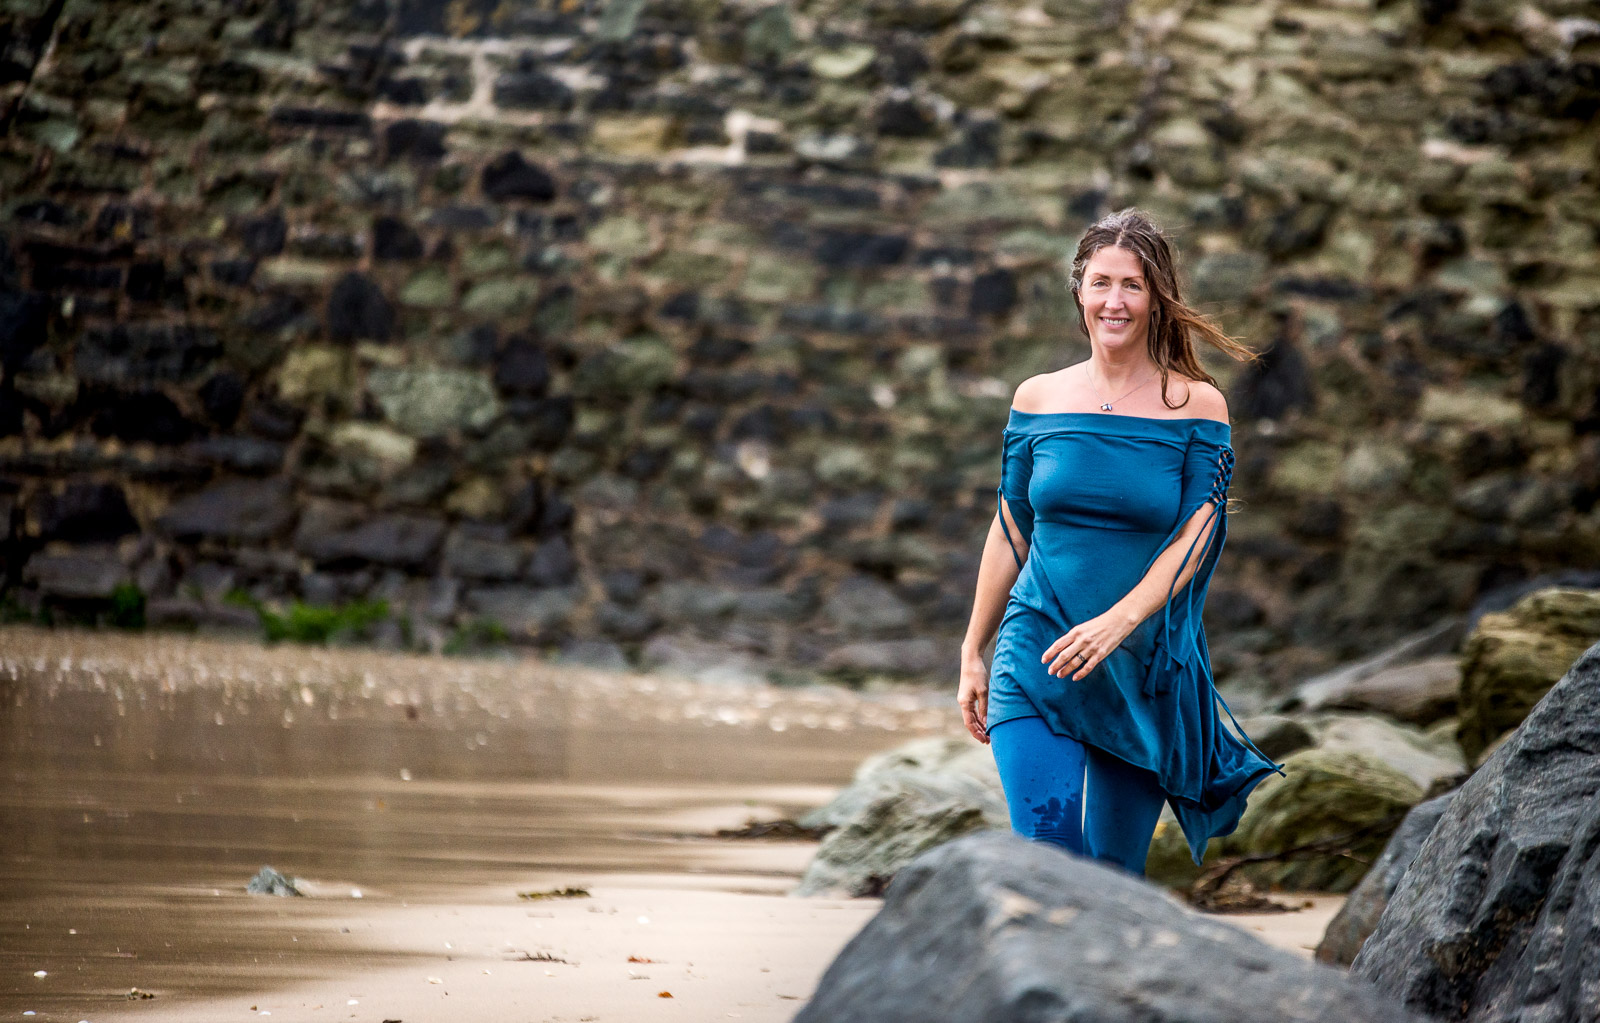 Holistic Photographer specialising in Outdoor Portraits for Goddess based in Brighton & London